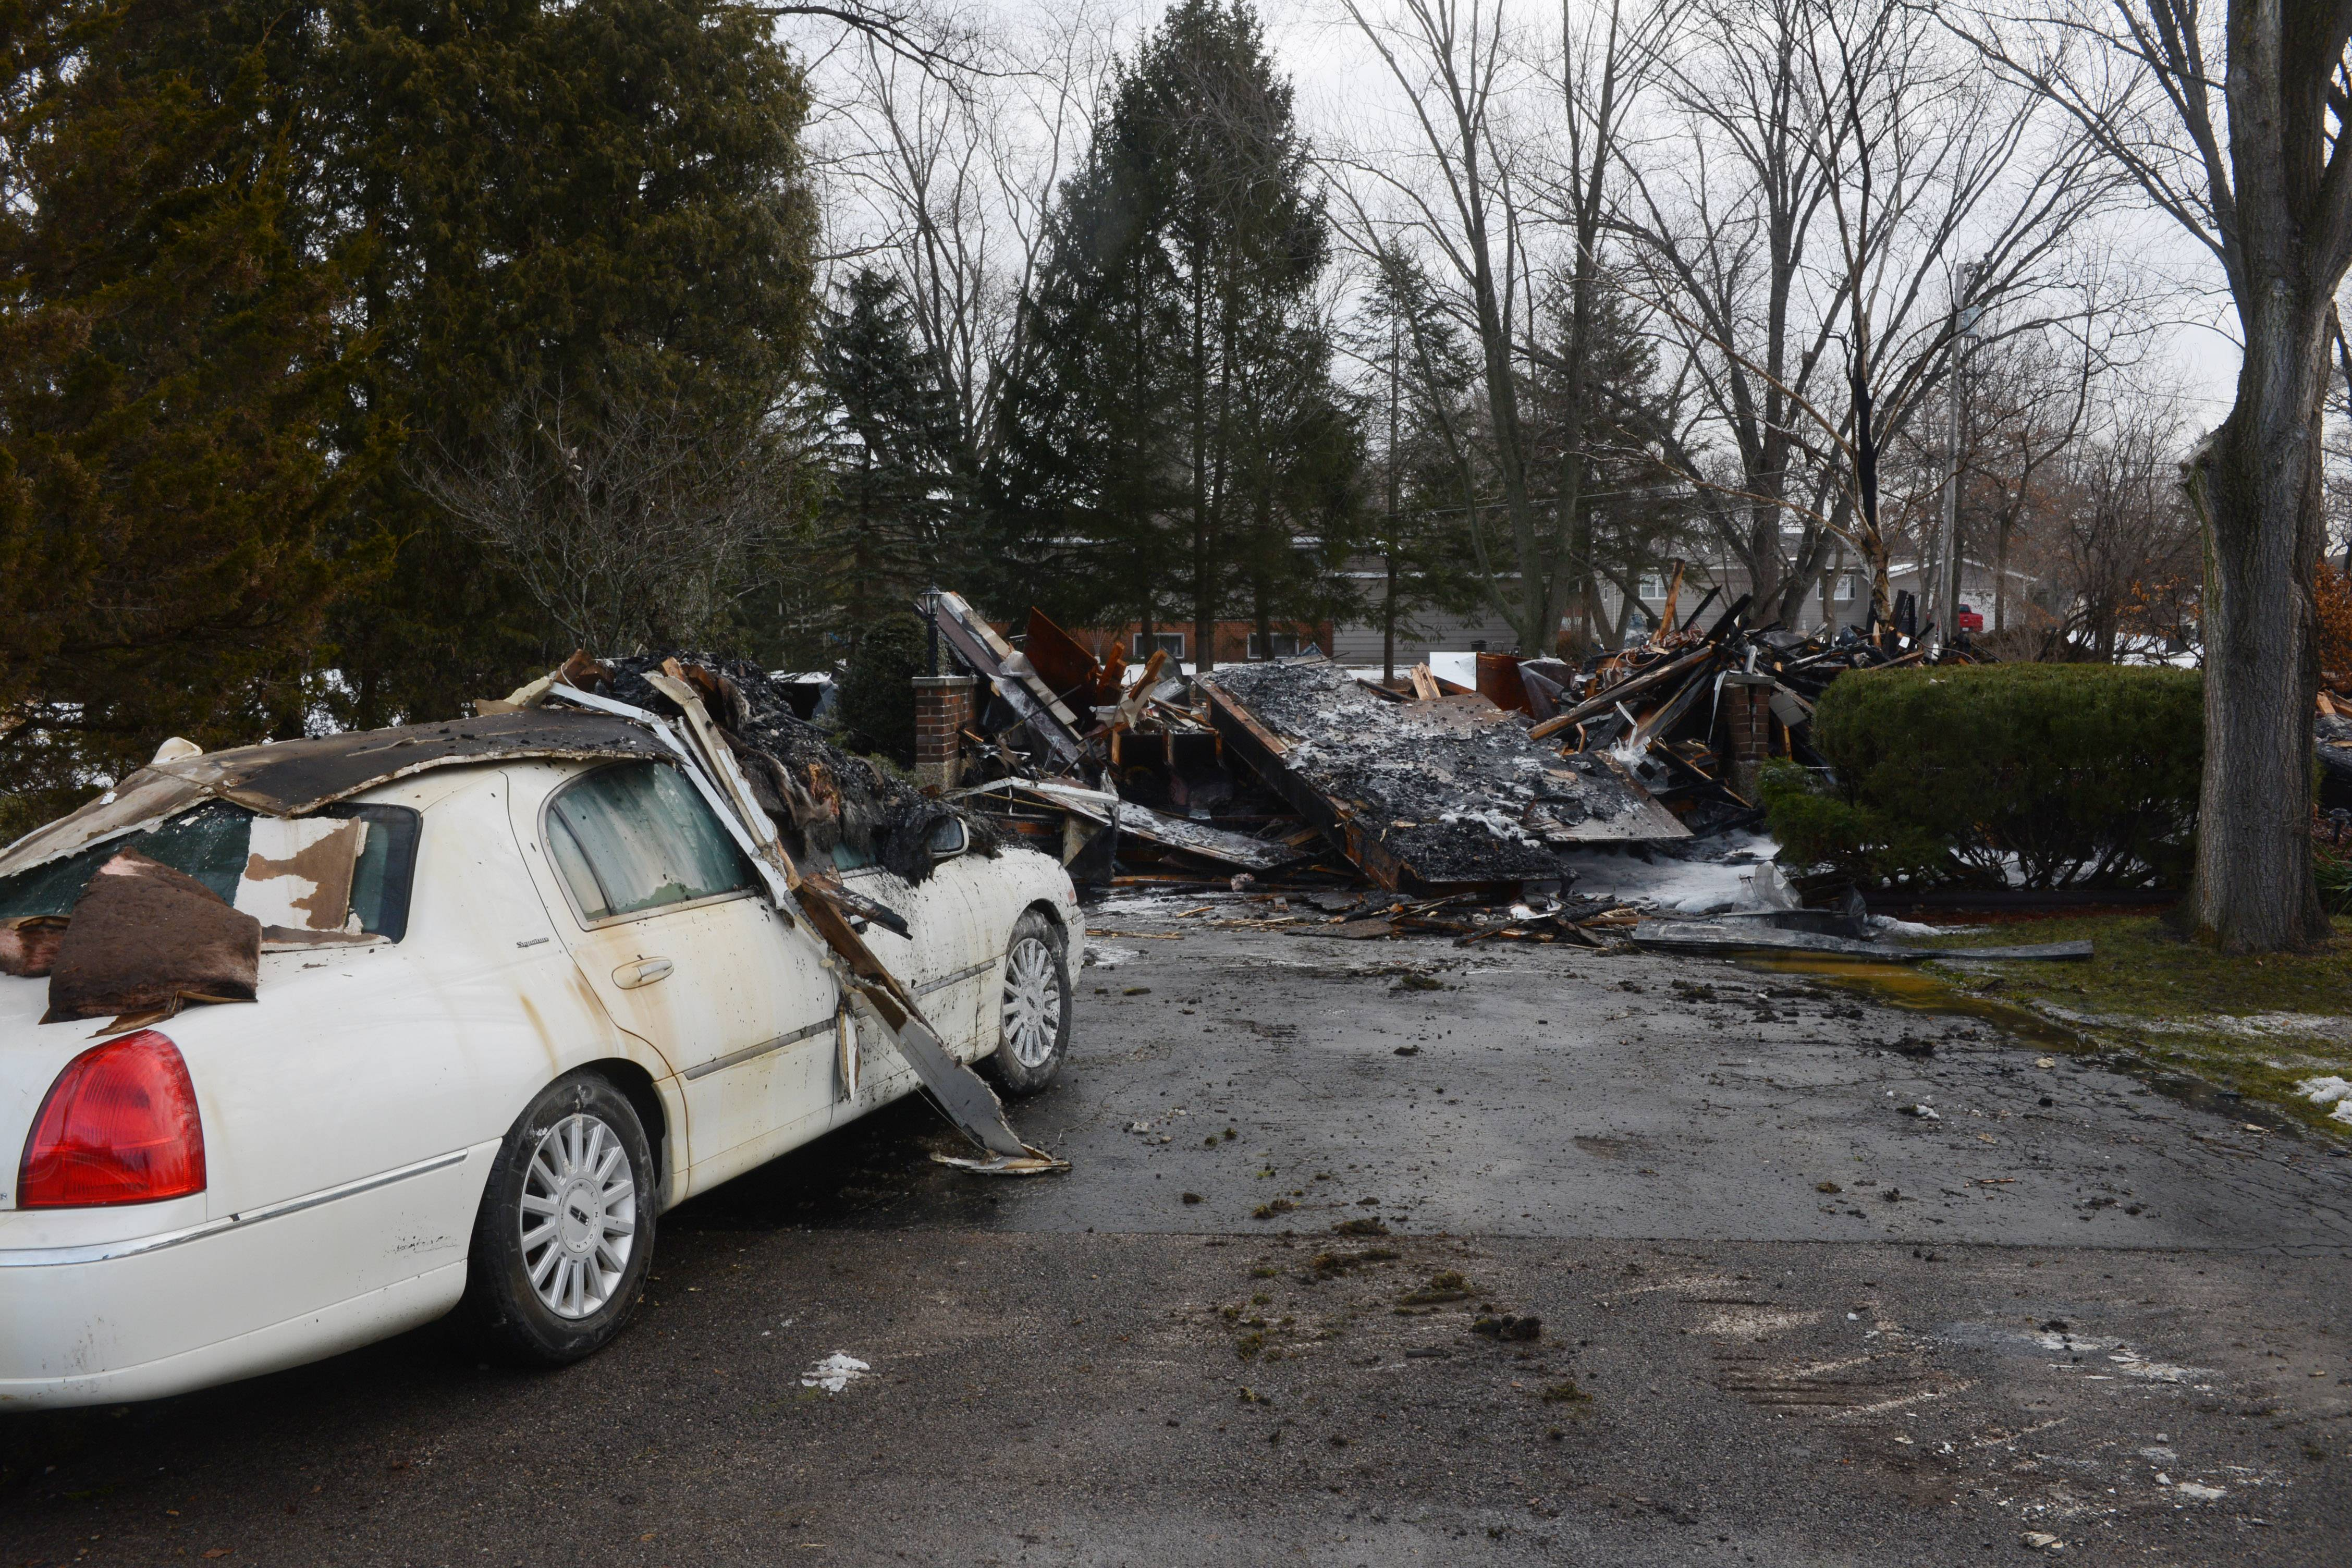 Charred remains of a home and a damaged car at the scene of a fatal fire in the 2100 block of North 21st Street in unincorporated Barrington Saturday morning.